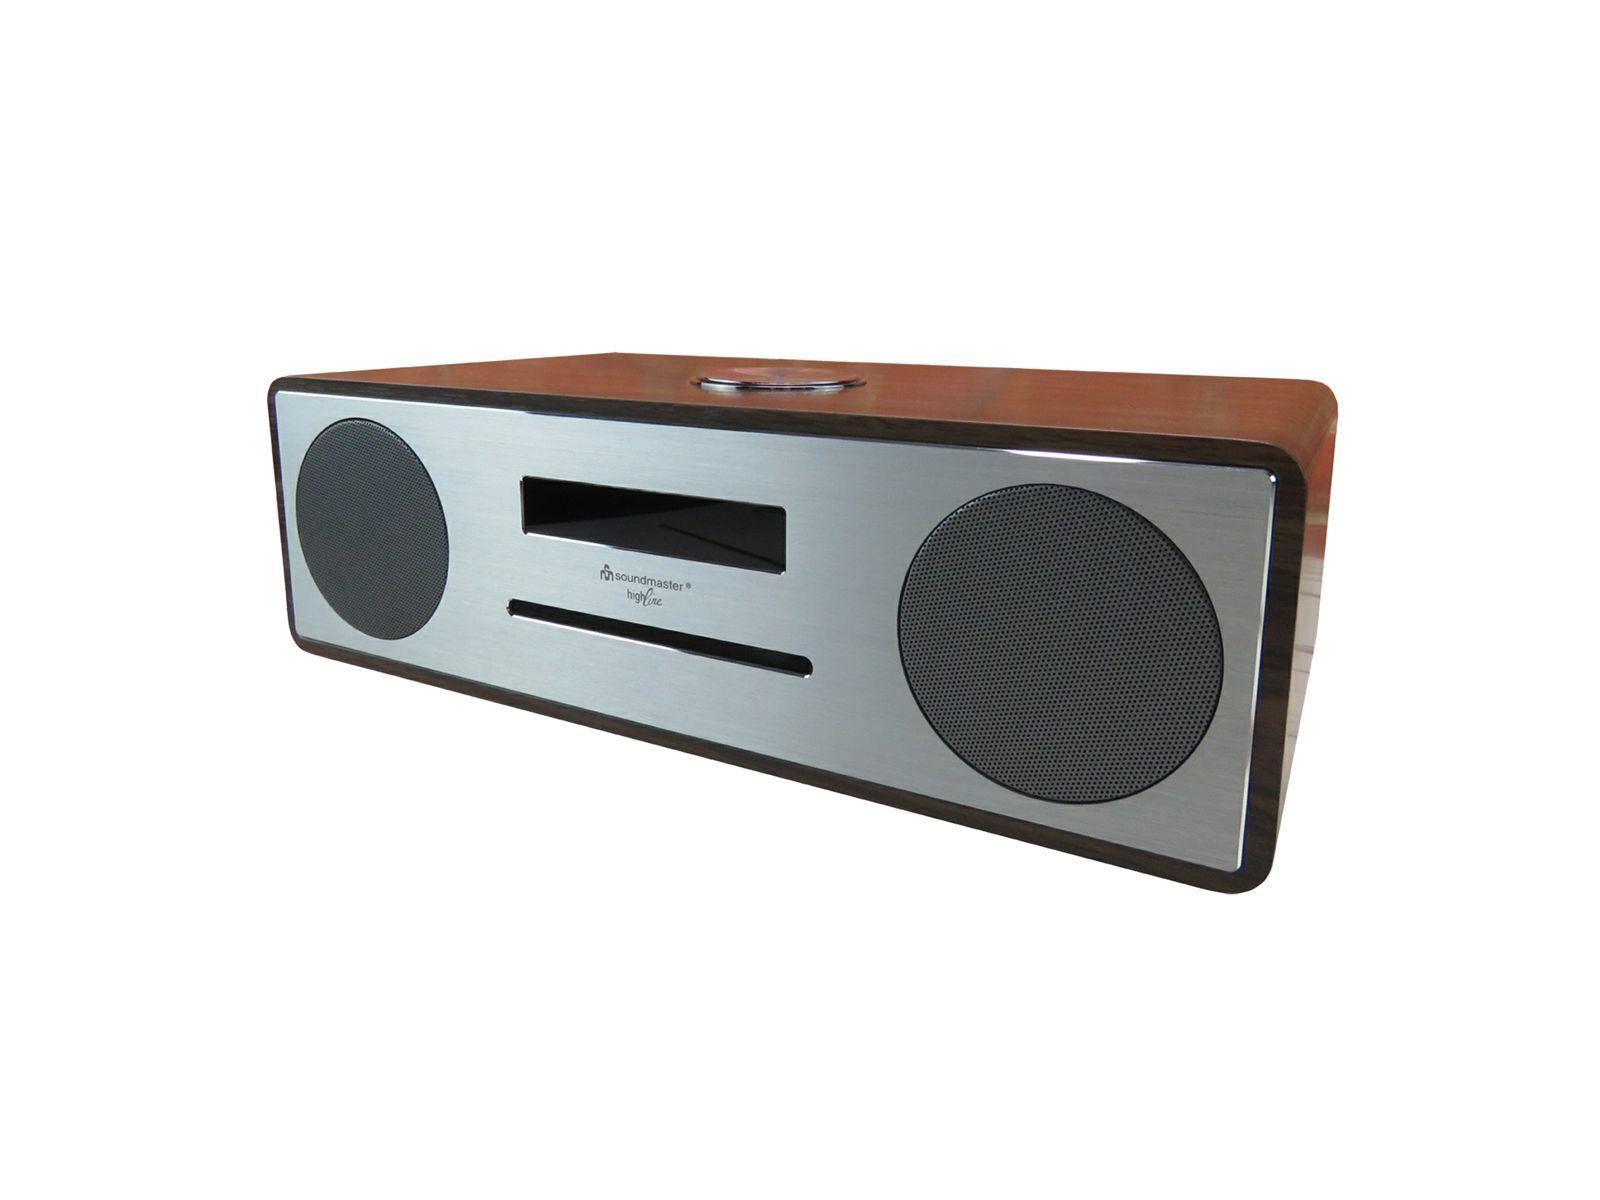 soundmaster dab950 dab radio hifi system with bluetooth. Black Bedroom Furniture Sets. Home Design Ideas